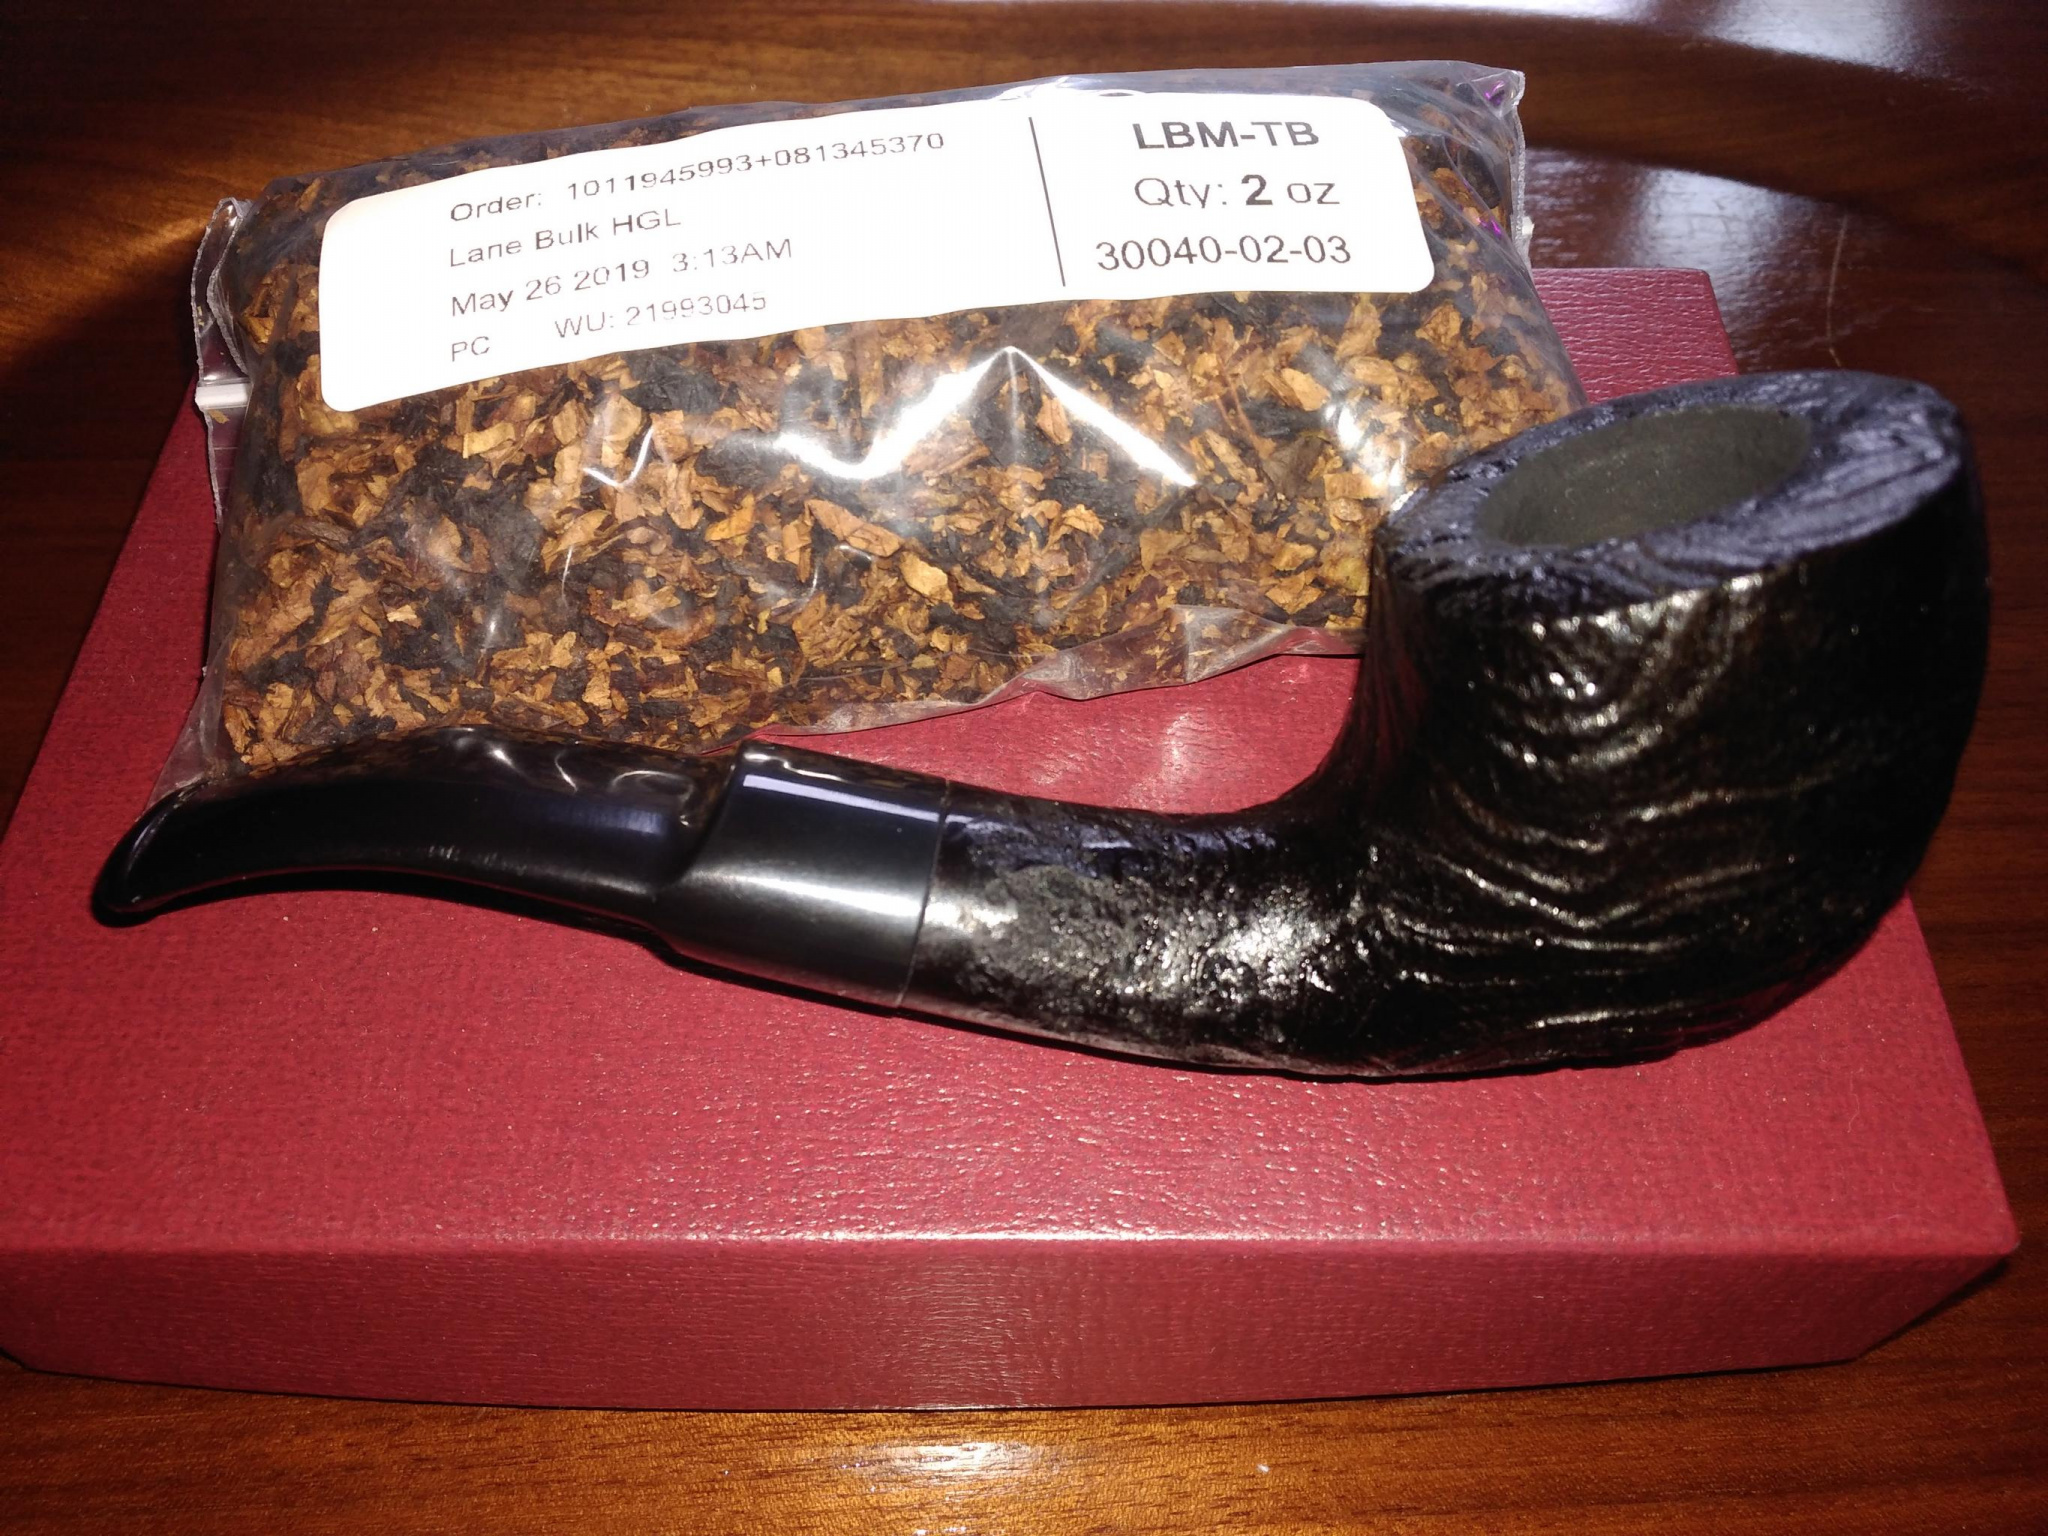 Whats your latest pipe purchase?-img_20190605_153441_1559774359251.jpg